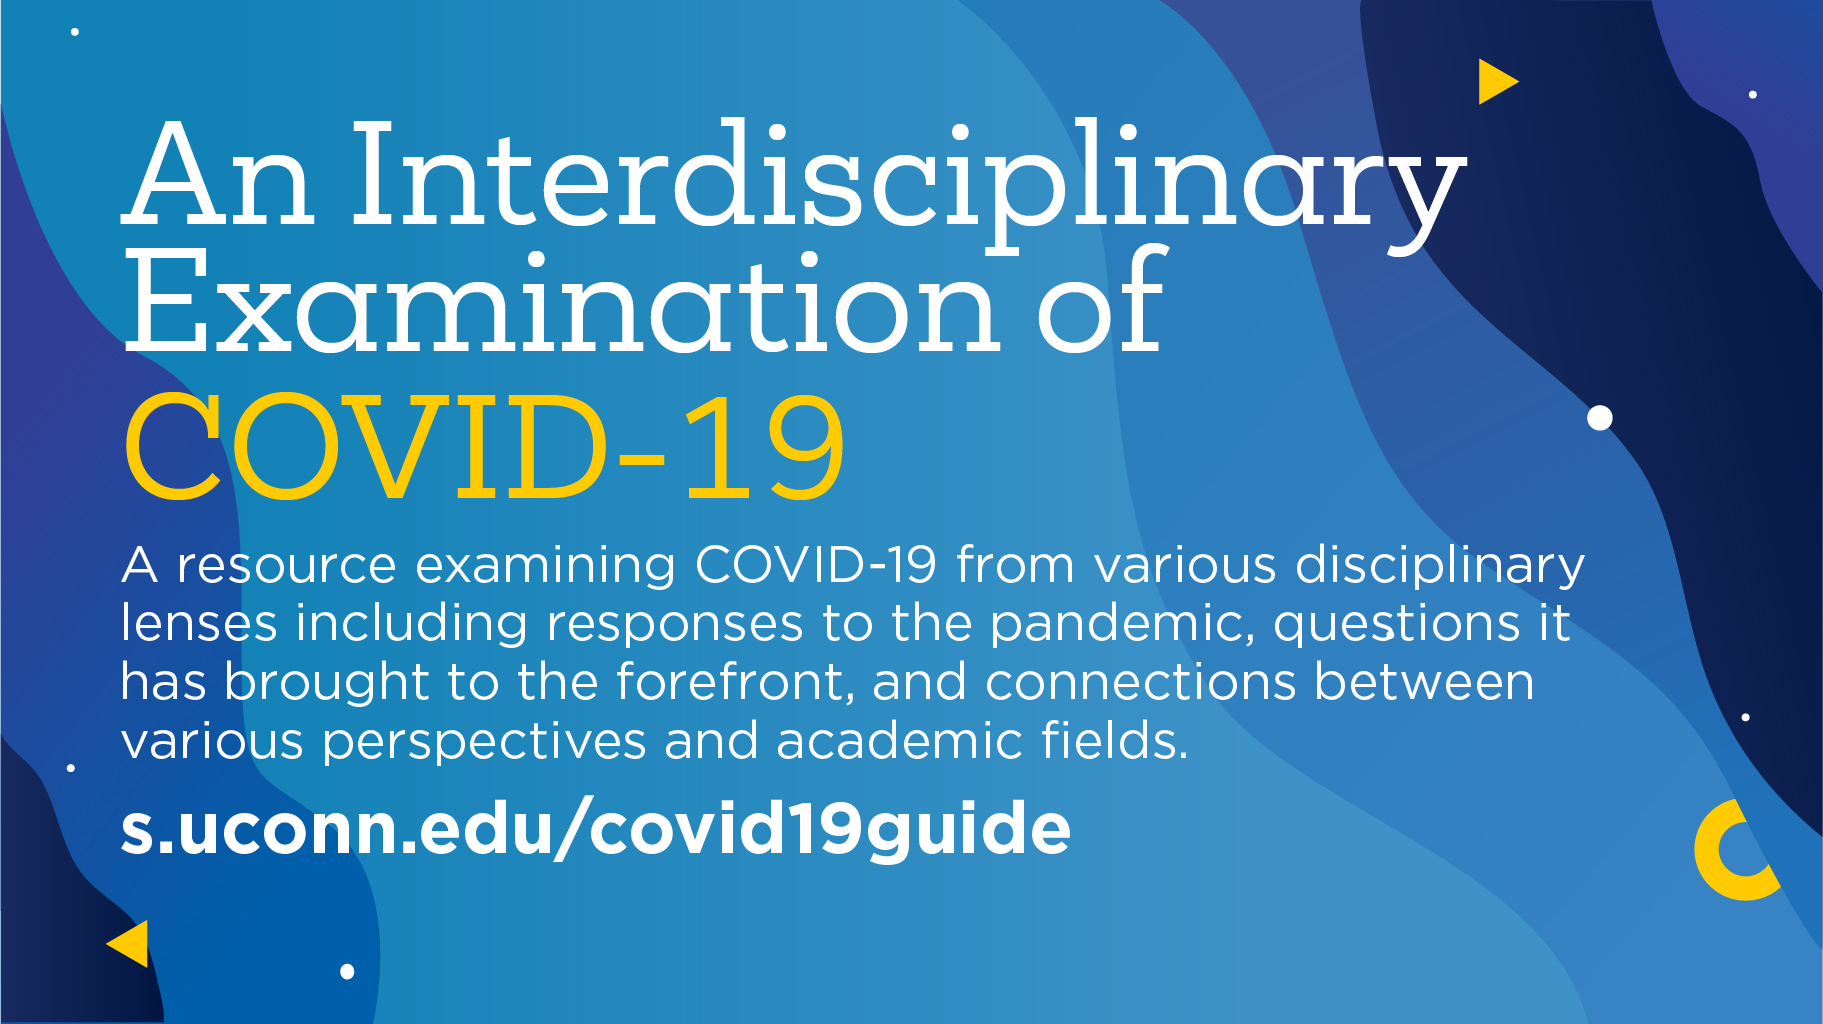 An Interdisciplinary Examination of COVID-19 A resource examining COVID-19 from various disciplinary lenses including responses to the pandemic, questions it has brought to the forefront, and connections between various perspectives and academic fields. s.uconn.edu/covid19guide